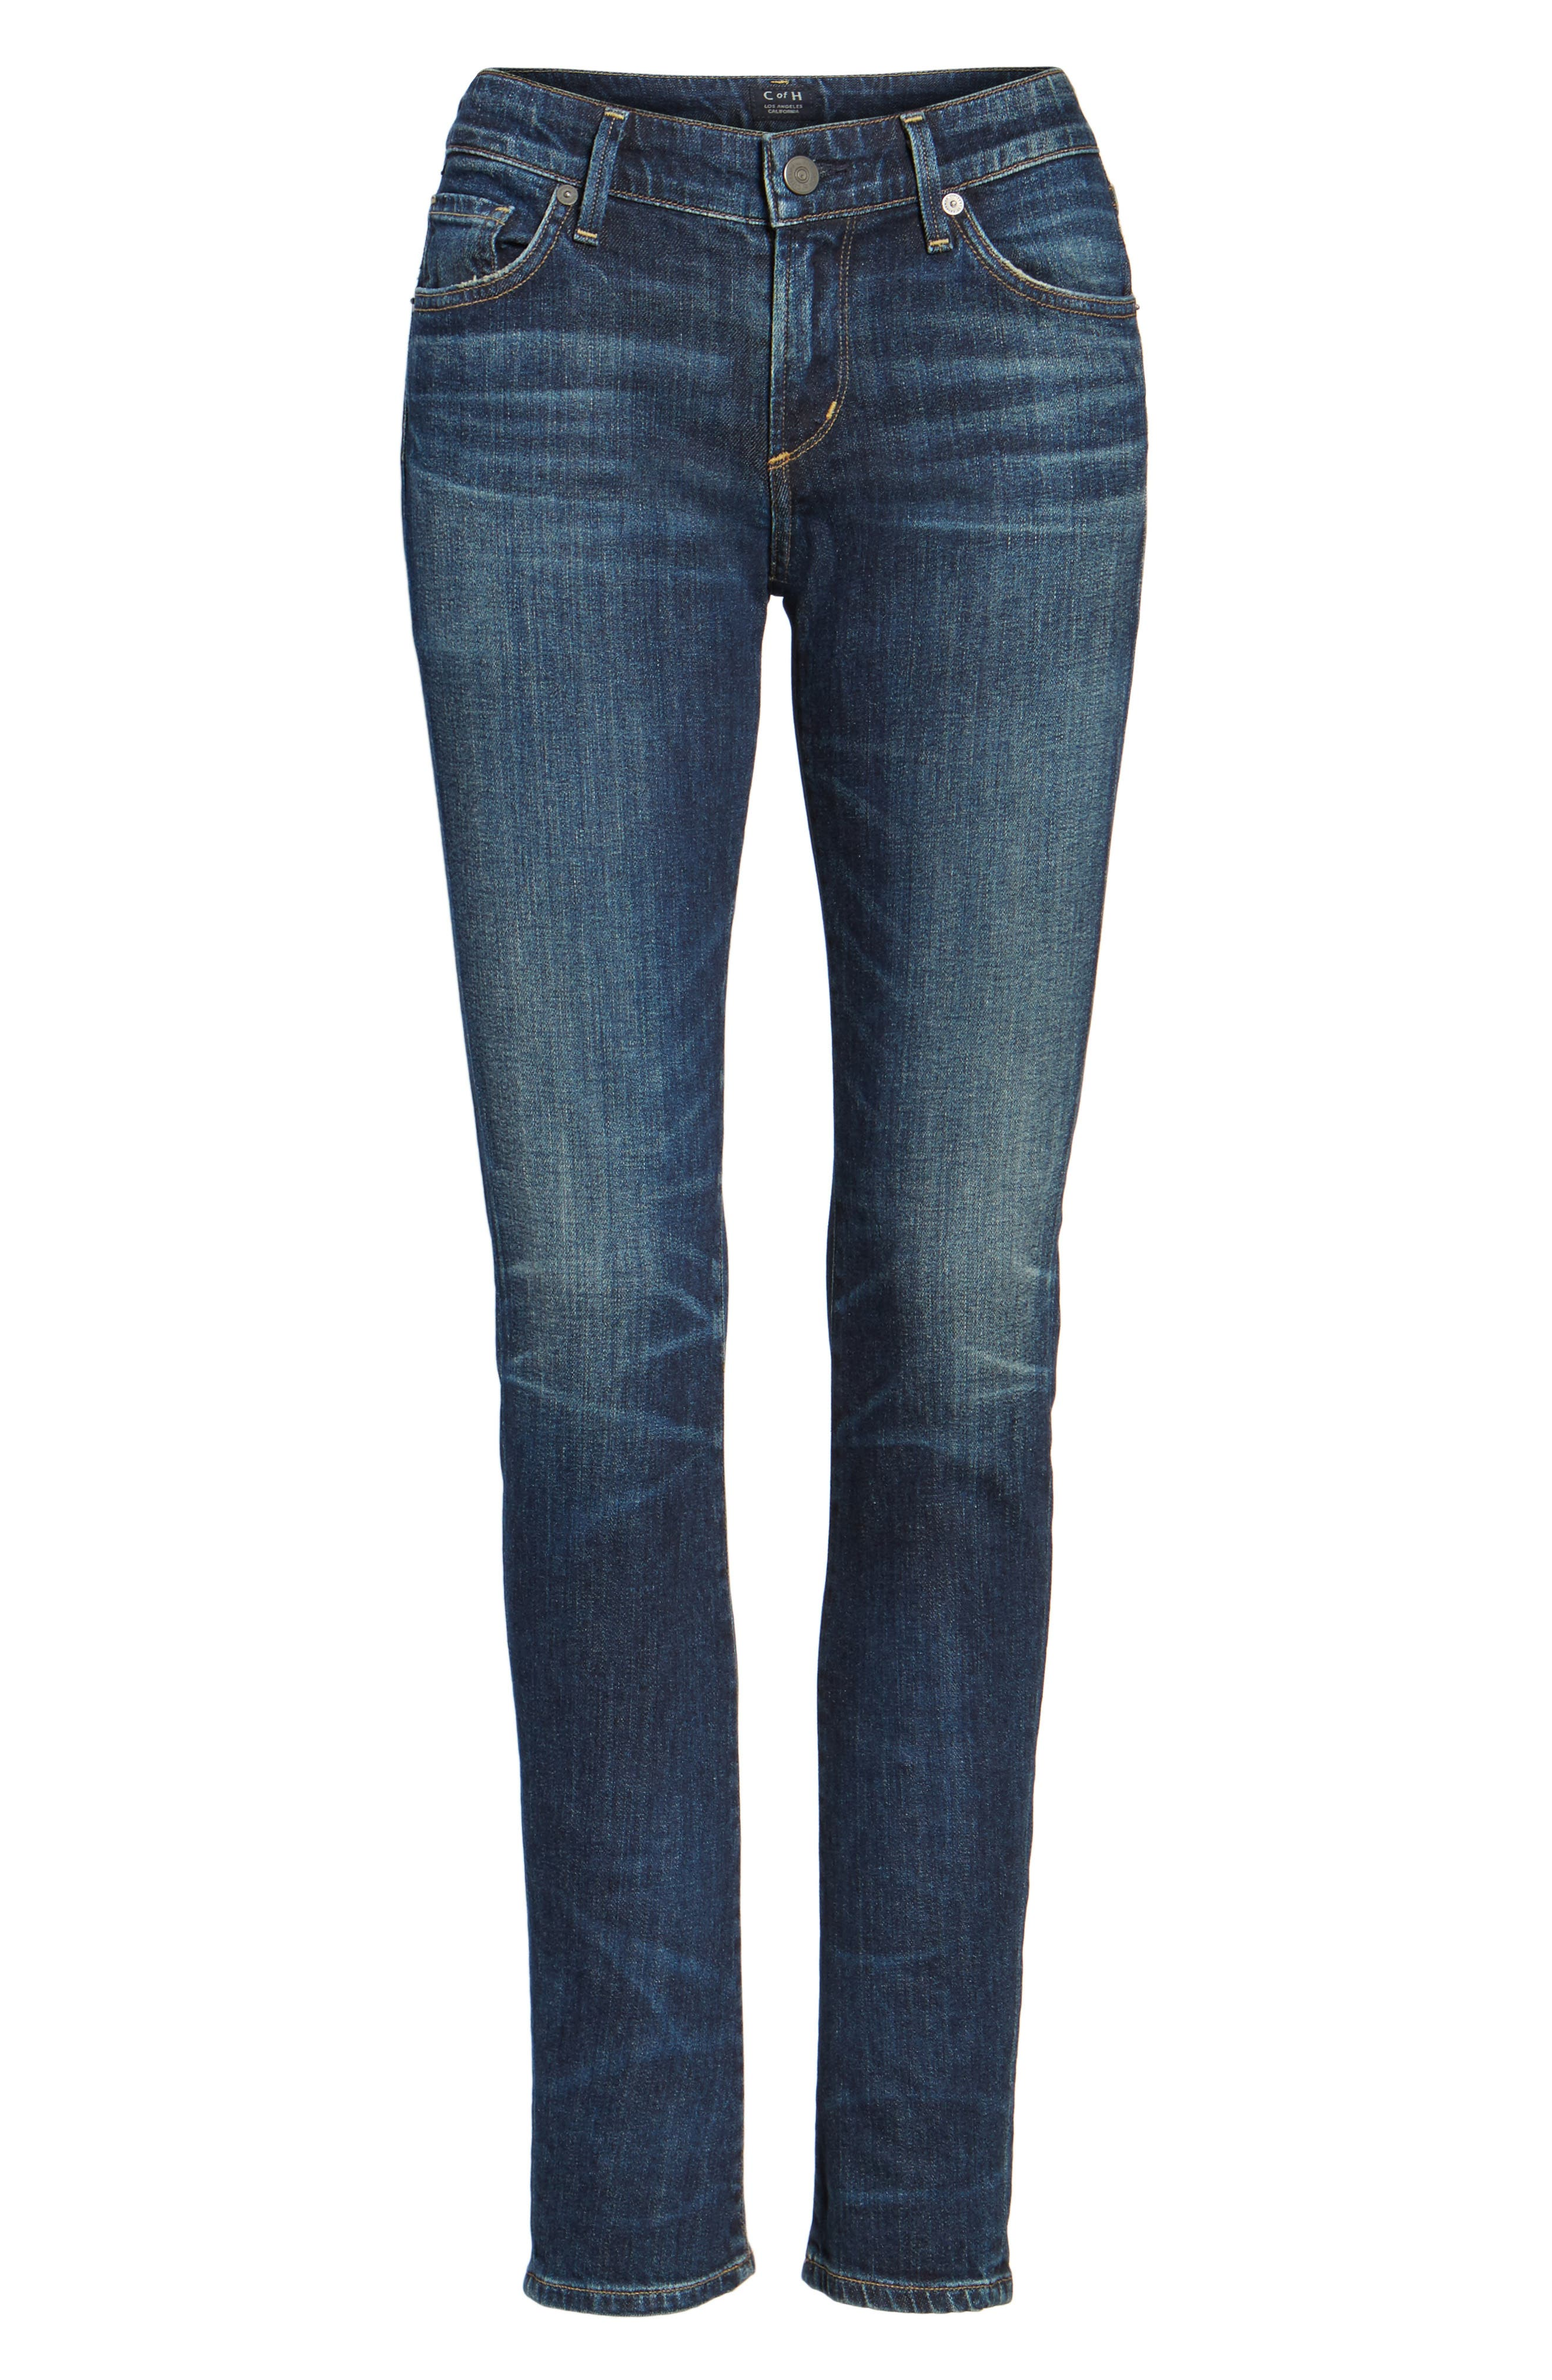 Alternate Image 4  - Citizens of Humanity 'Racer' Whiskered Skinny Jeans (Patina)